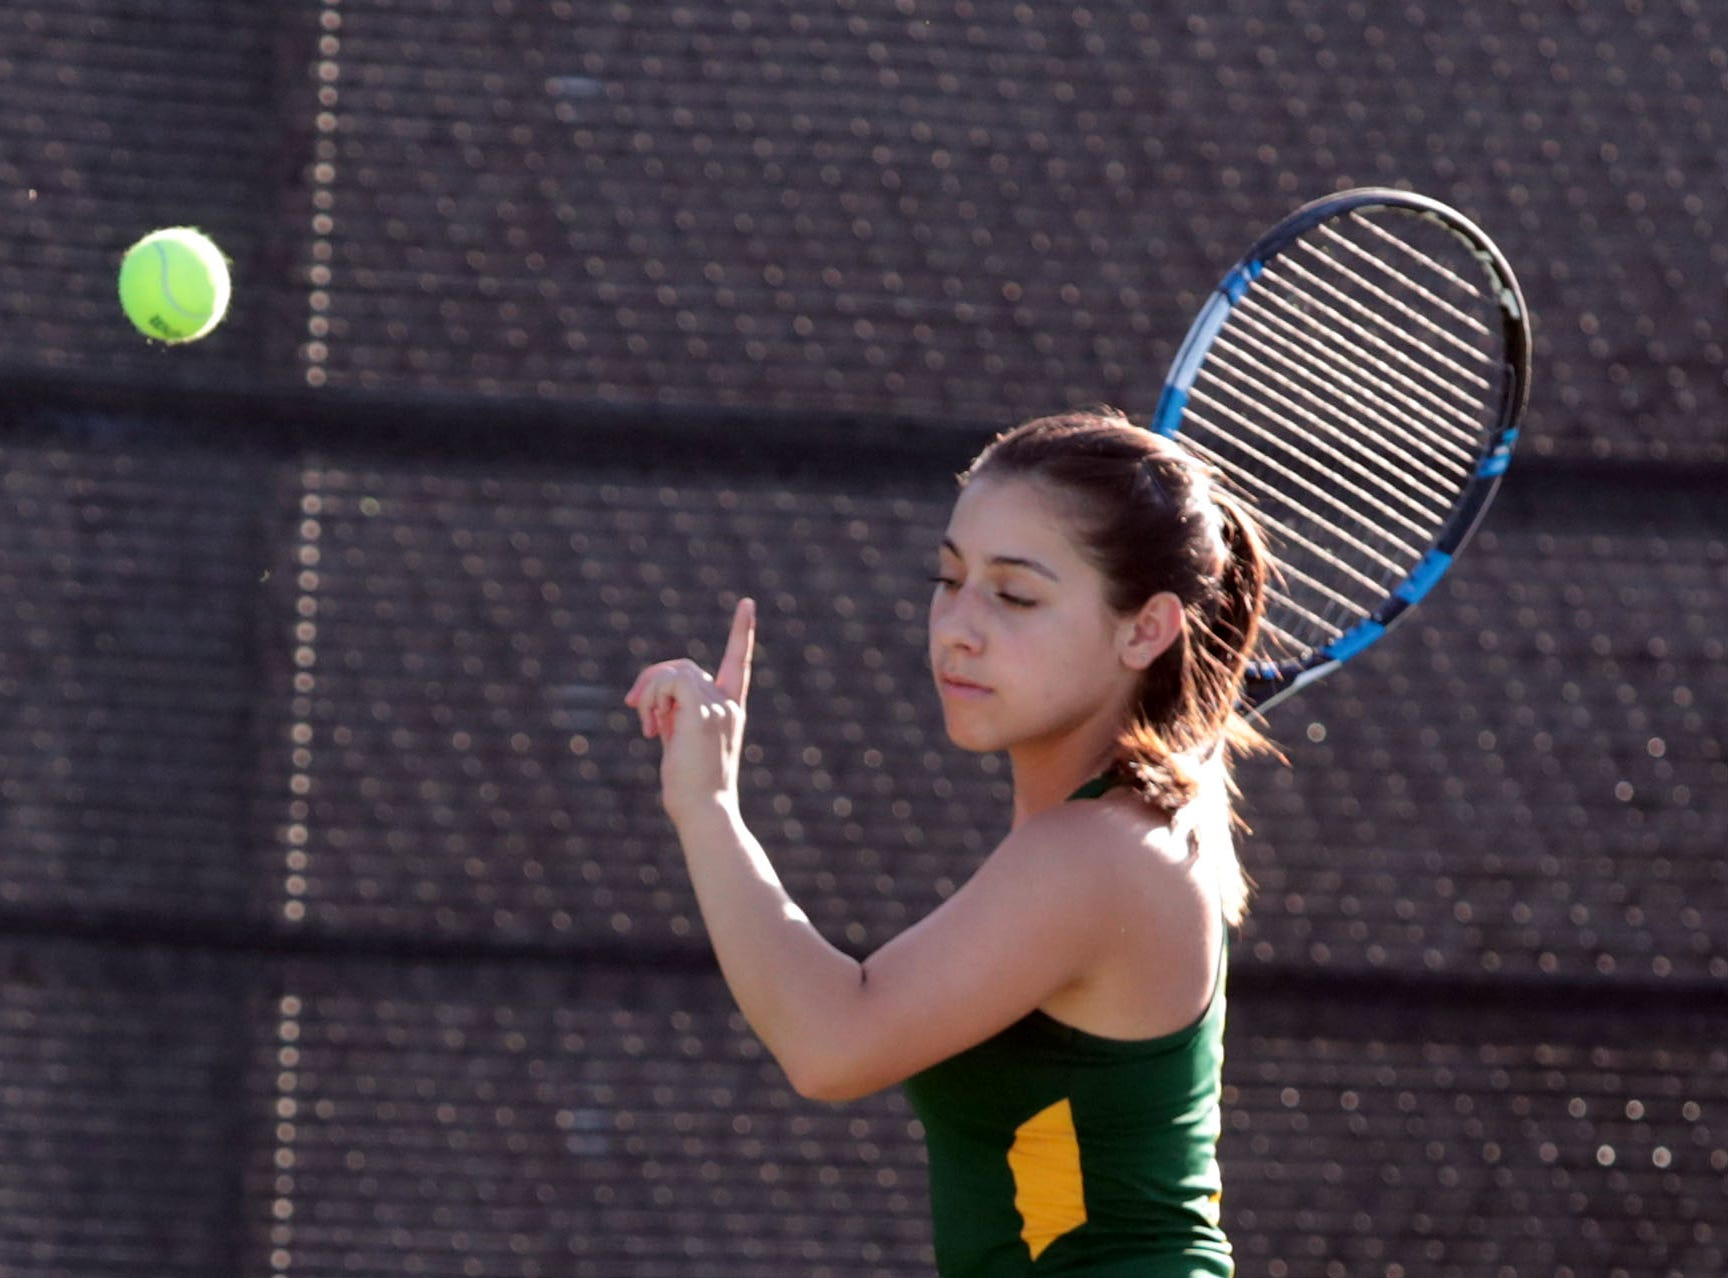 Coachella Valley girls tennis took on Desert Mirage on Tuesday, October 9, 2018 at PGA West in La Quinta.